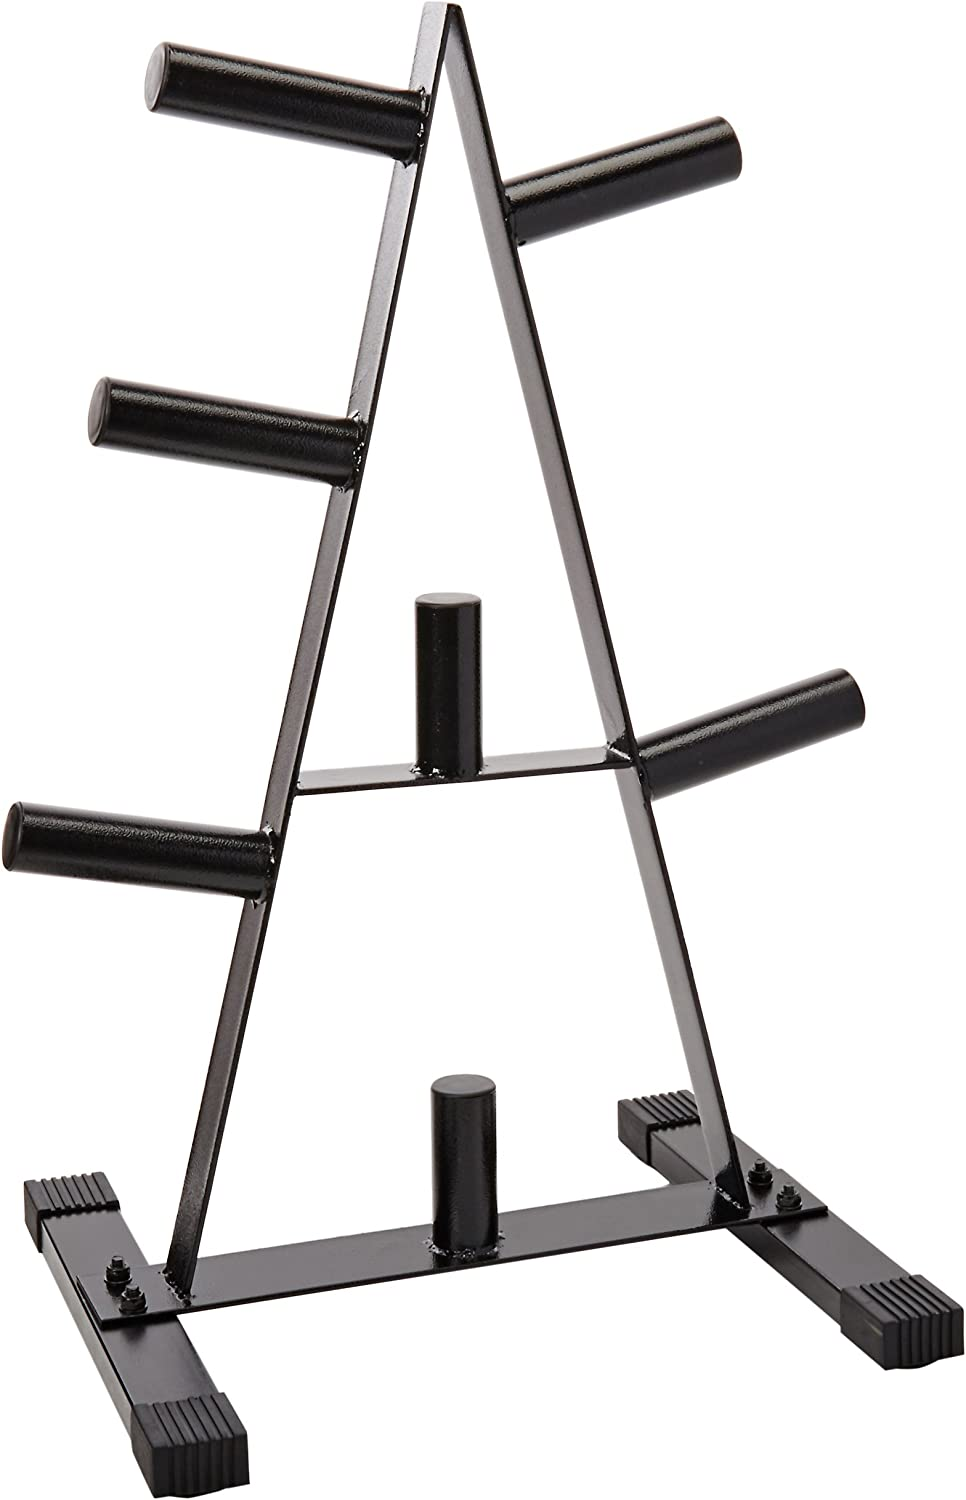 CAP Barbell Olympic 2-Inch Plate Rack : Plate Trees : Sports & Outdoors